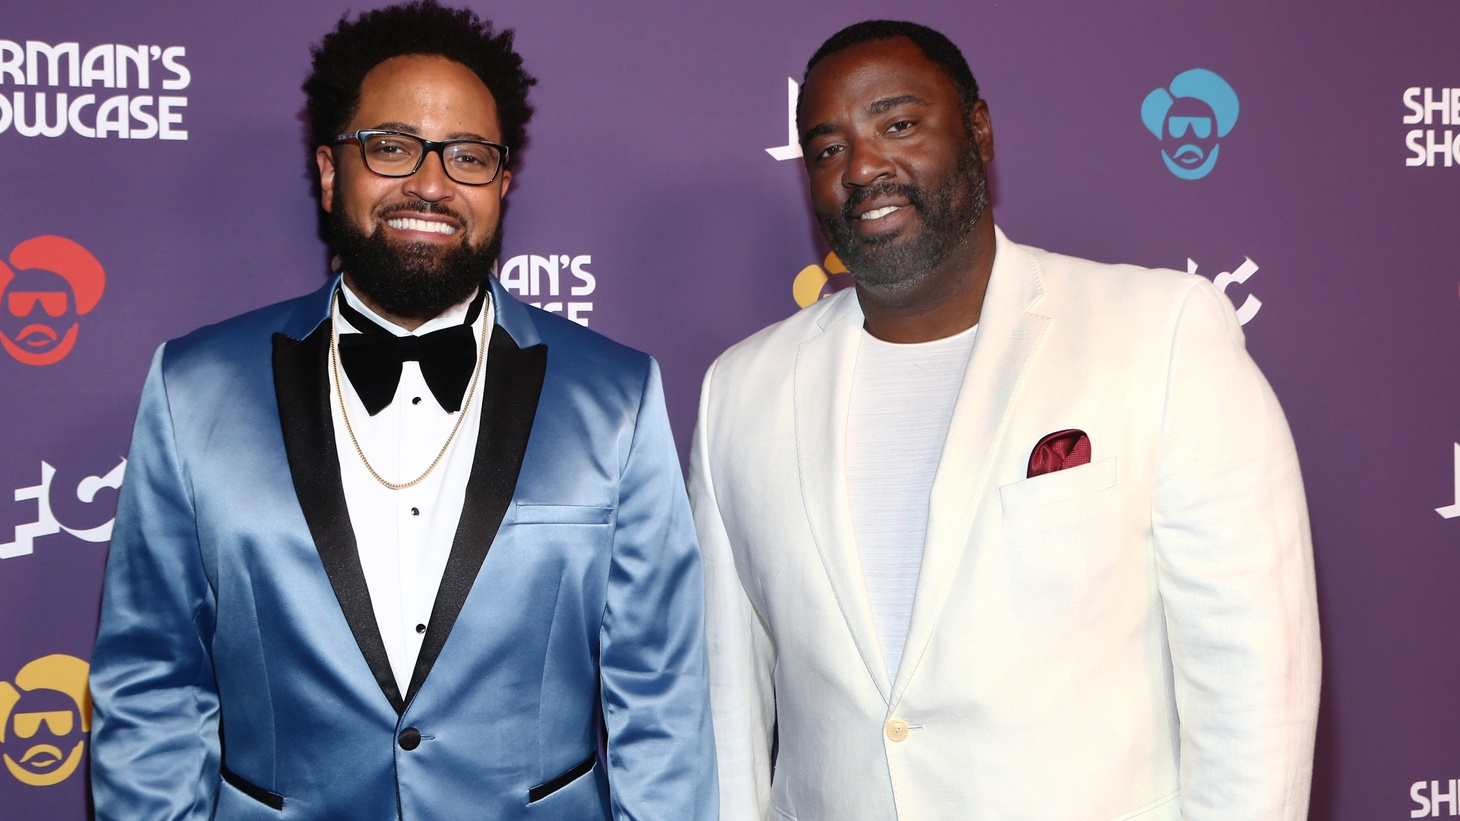 "Diallo Riddle (left) and Bashir Salahuddin (right), creators and stars of Sherman's Showcase. The series' ""Black History Month Spectacular"" airs Friday, June 19th on AMC at 10pm ET/PT and IFC at 11pm ET/PT."